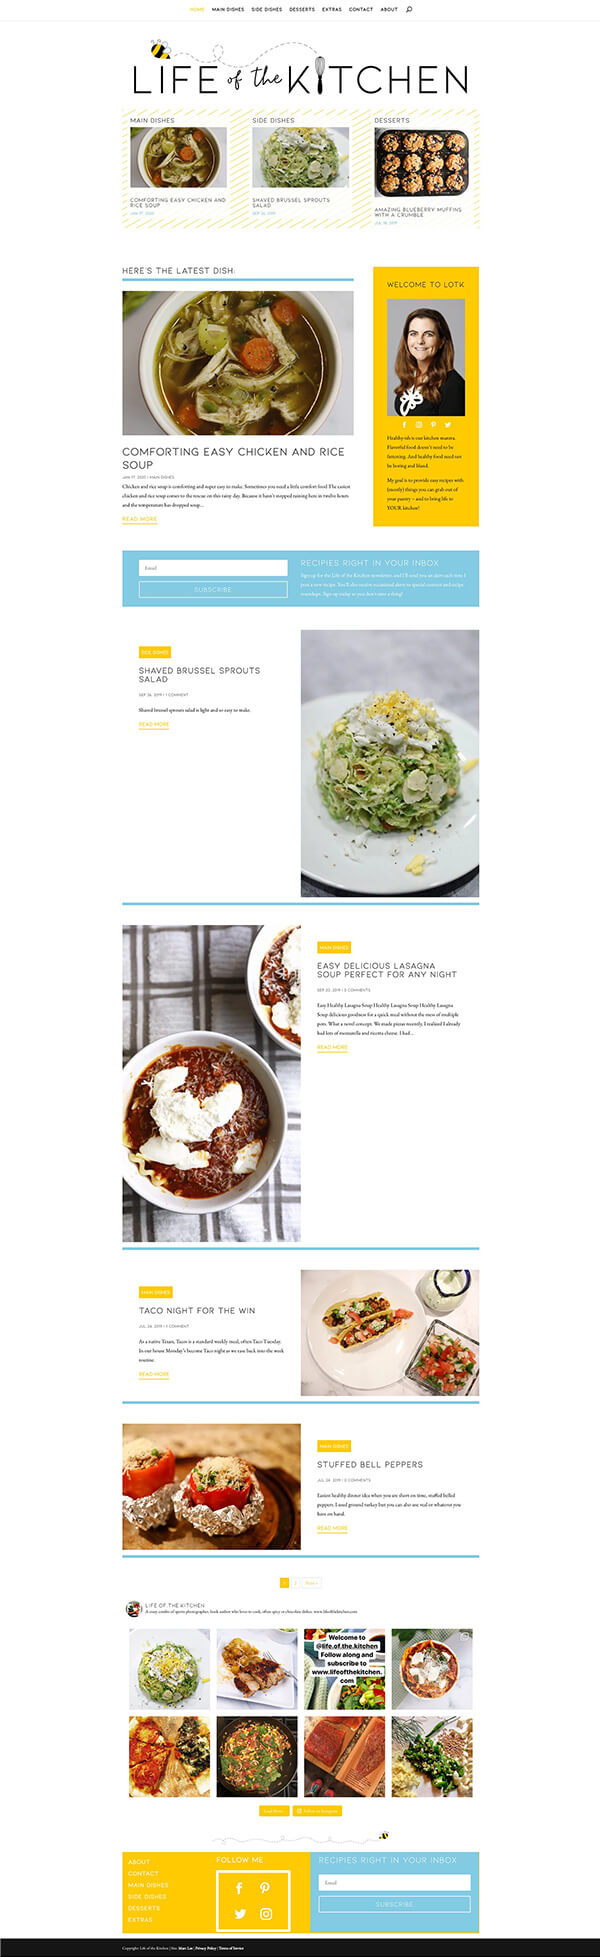 Life of the Kitchen website